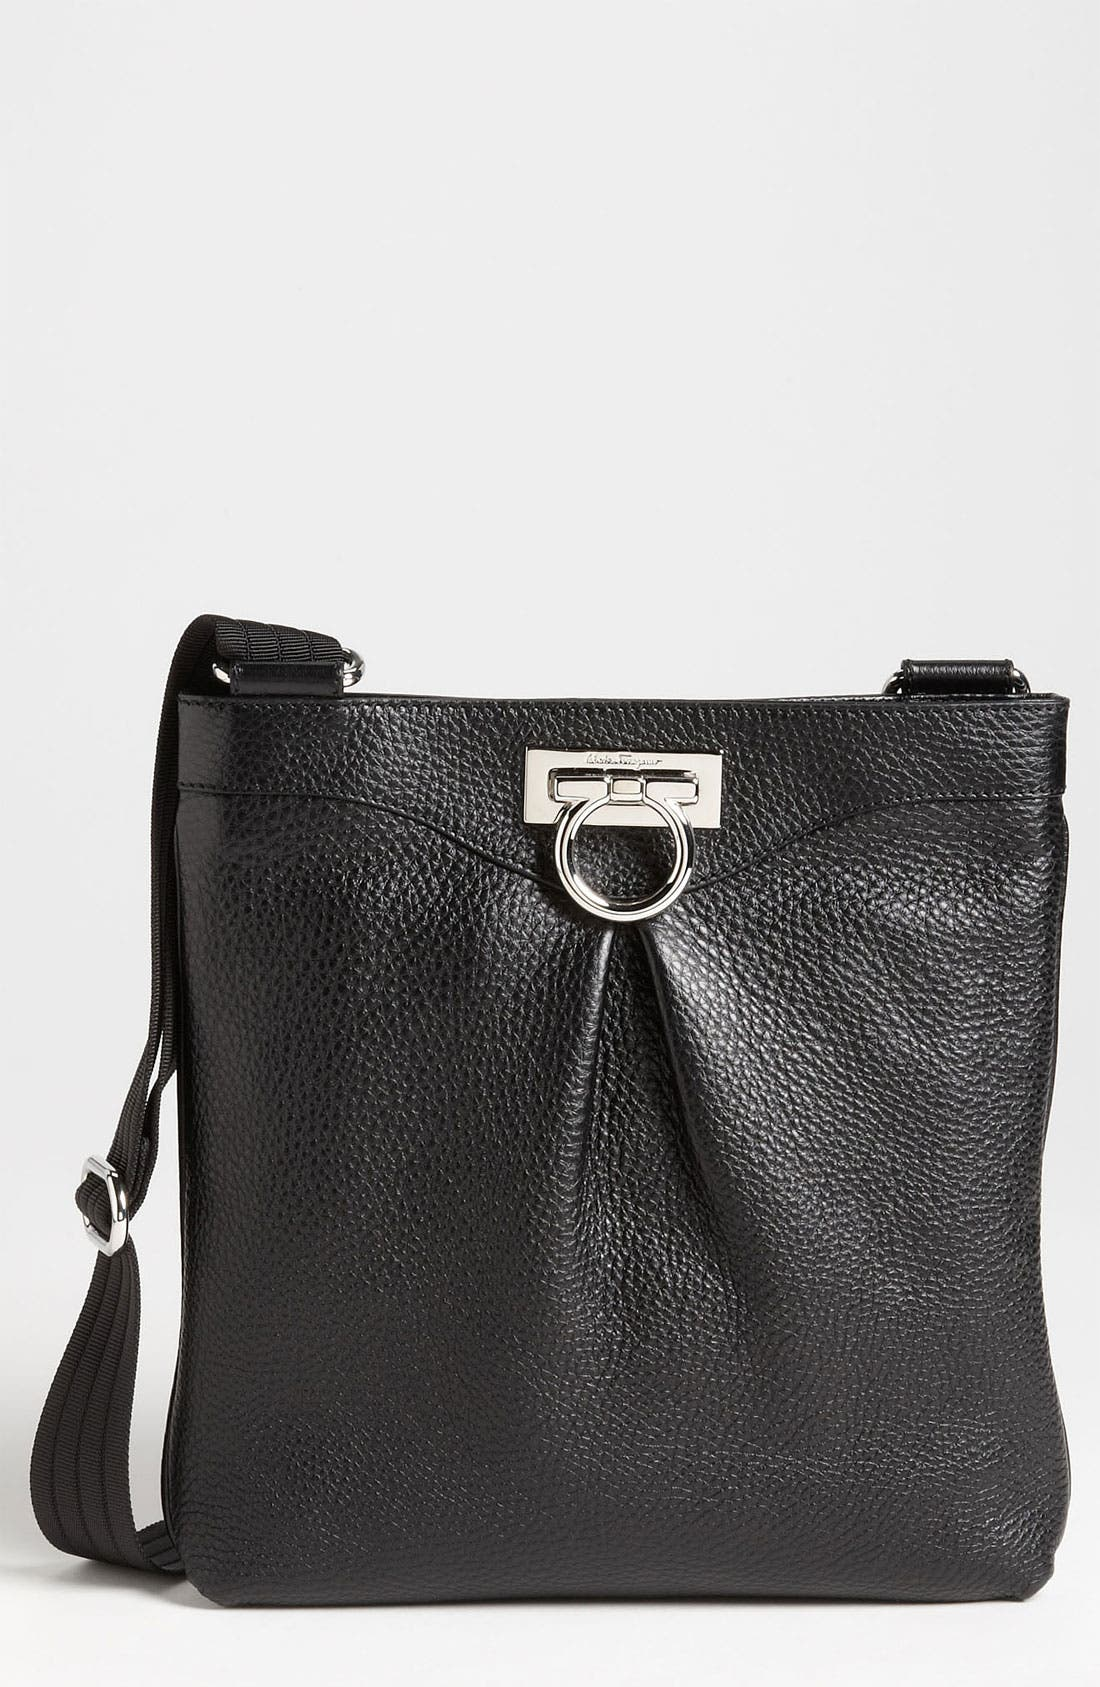 Alternate Image 1 Selected - Salvatore Ferragamo 'Grazielle Vitello' Leather Crossbody Bag